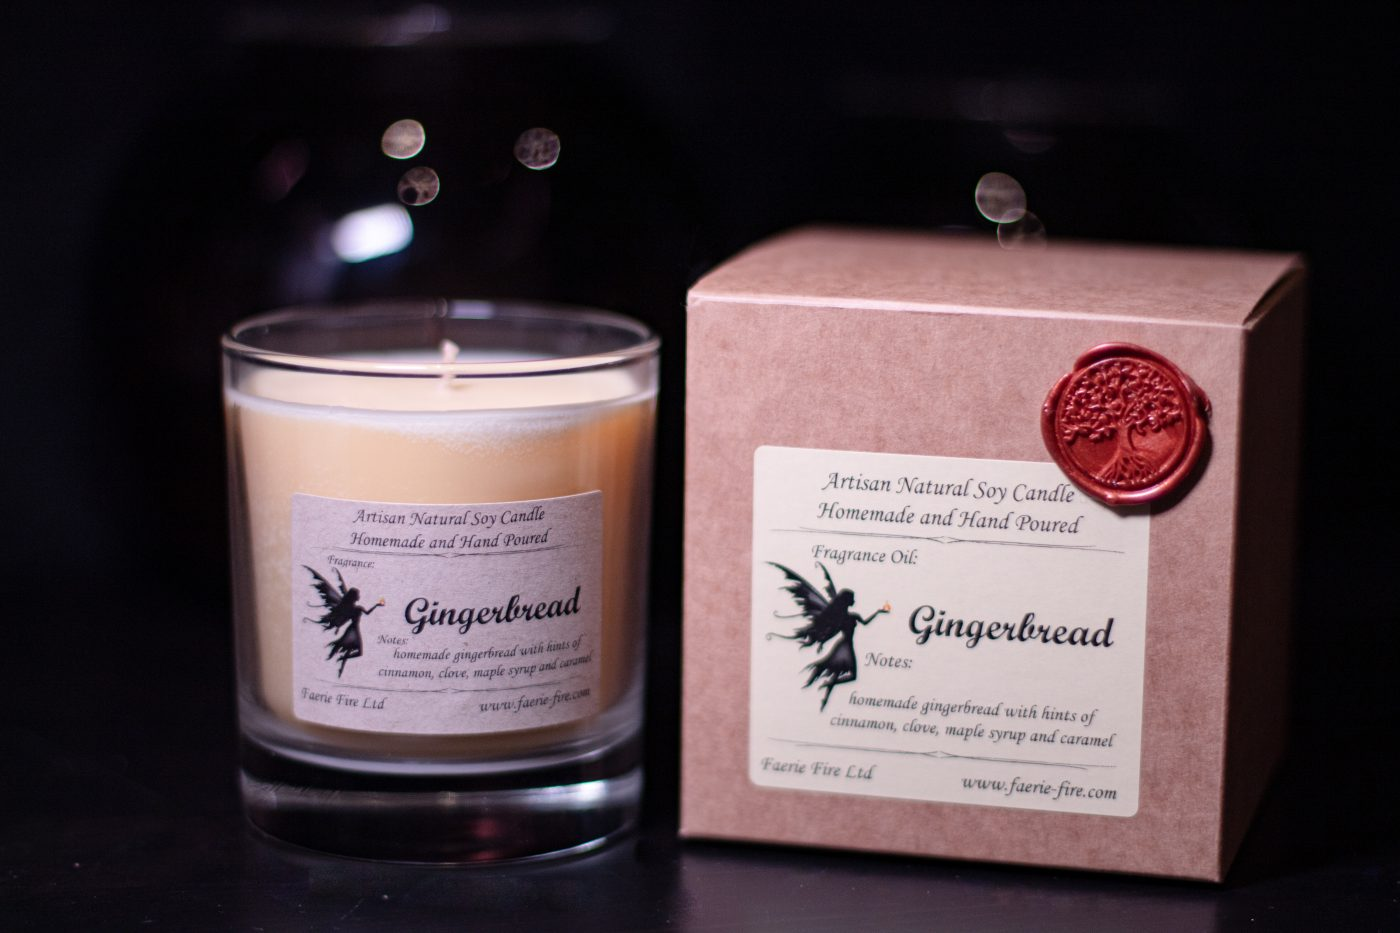 Pale yellow gingerbread fragranced candle in a clear glass jar beside a presentation box on a dark background